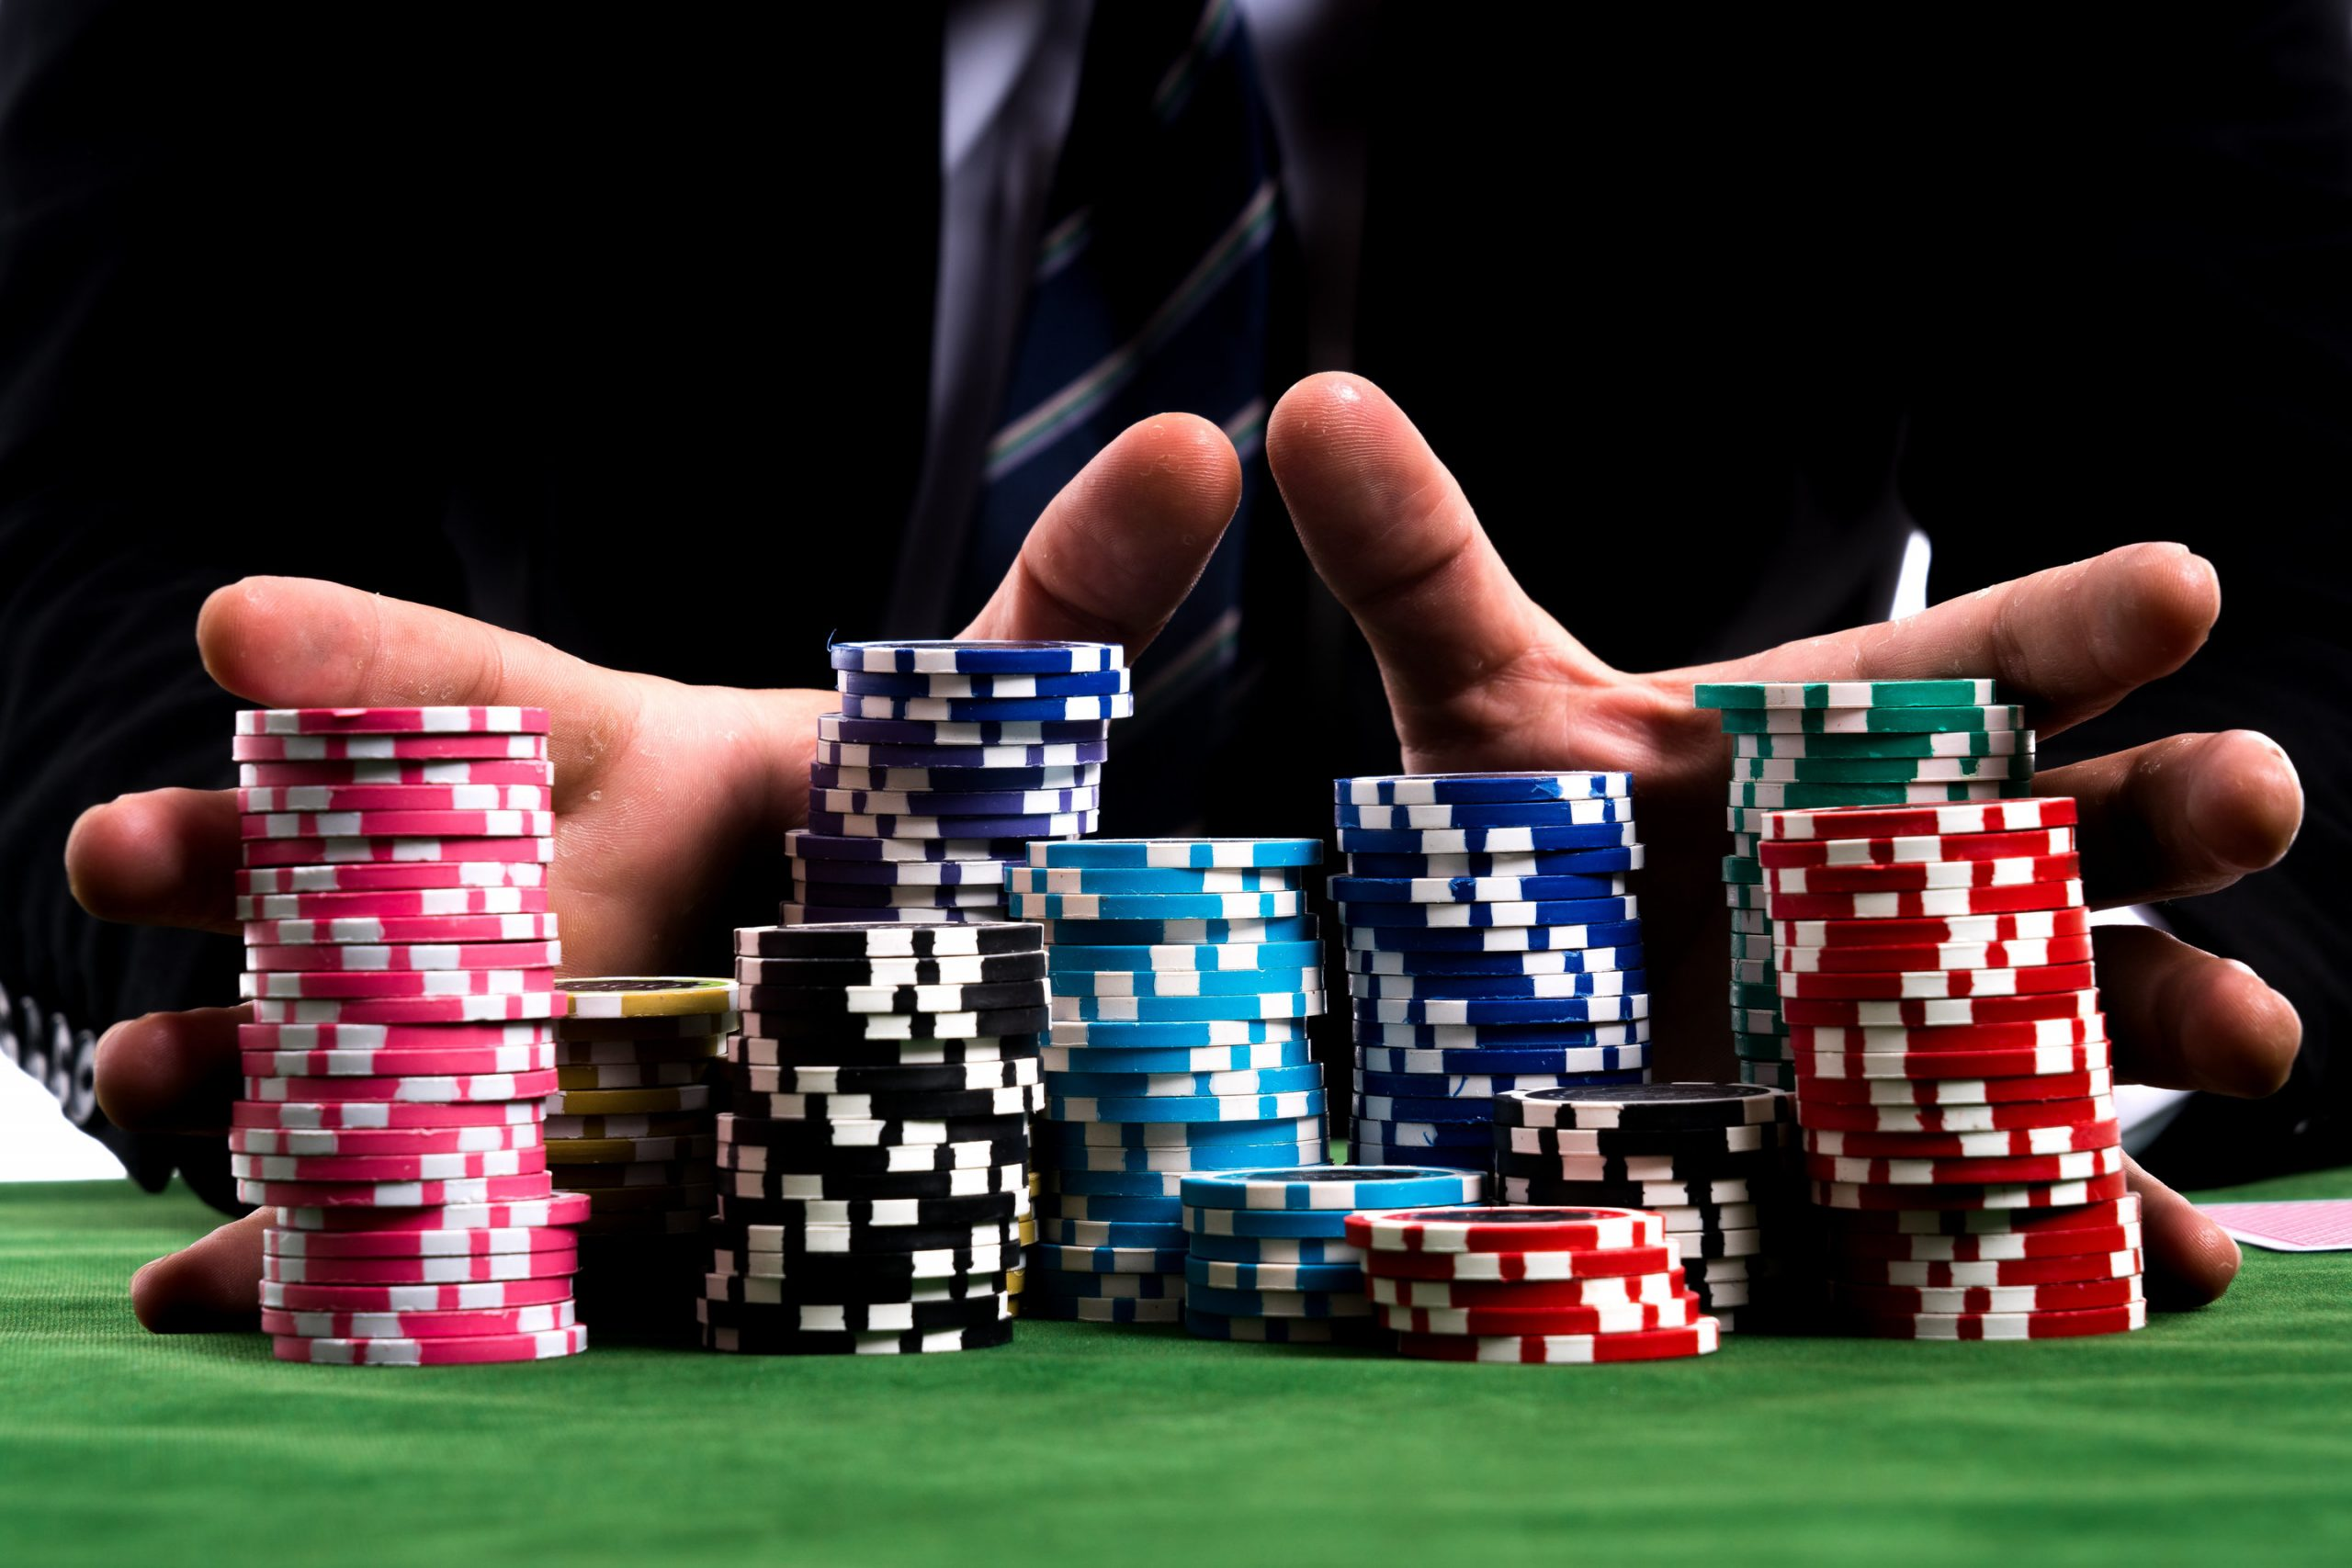 How to become rich by playing poker